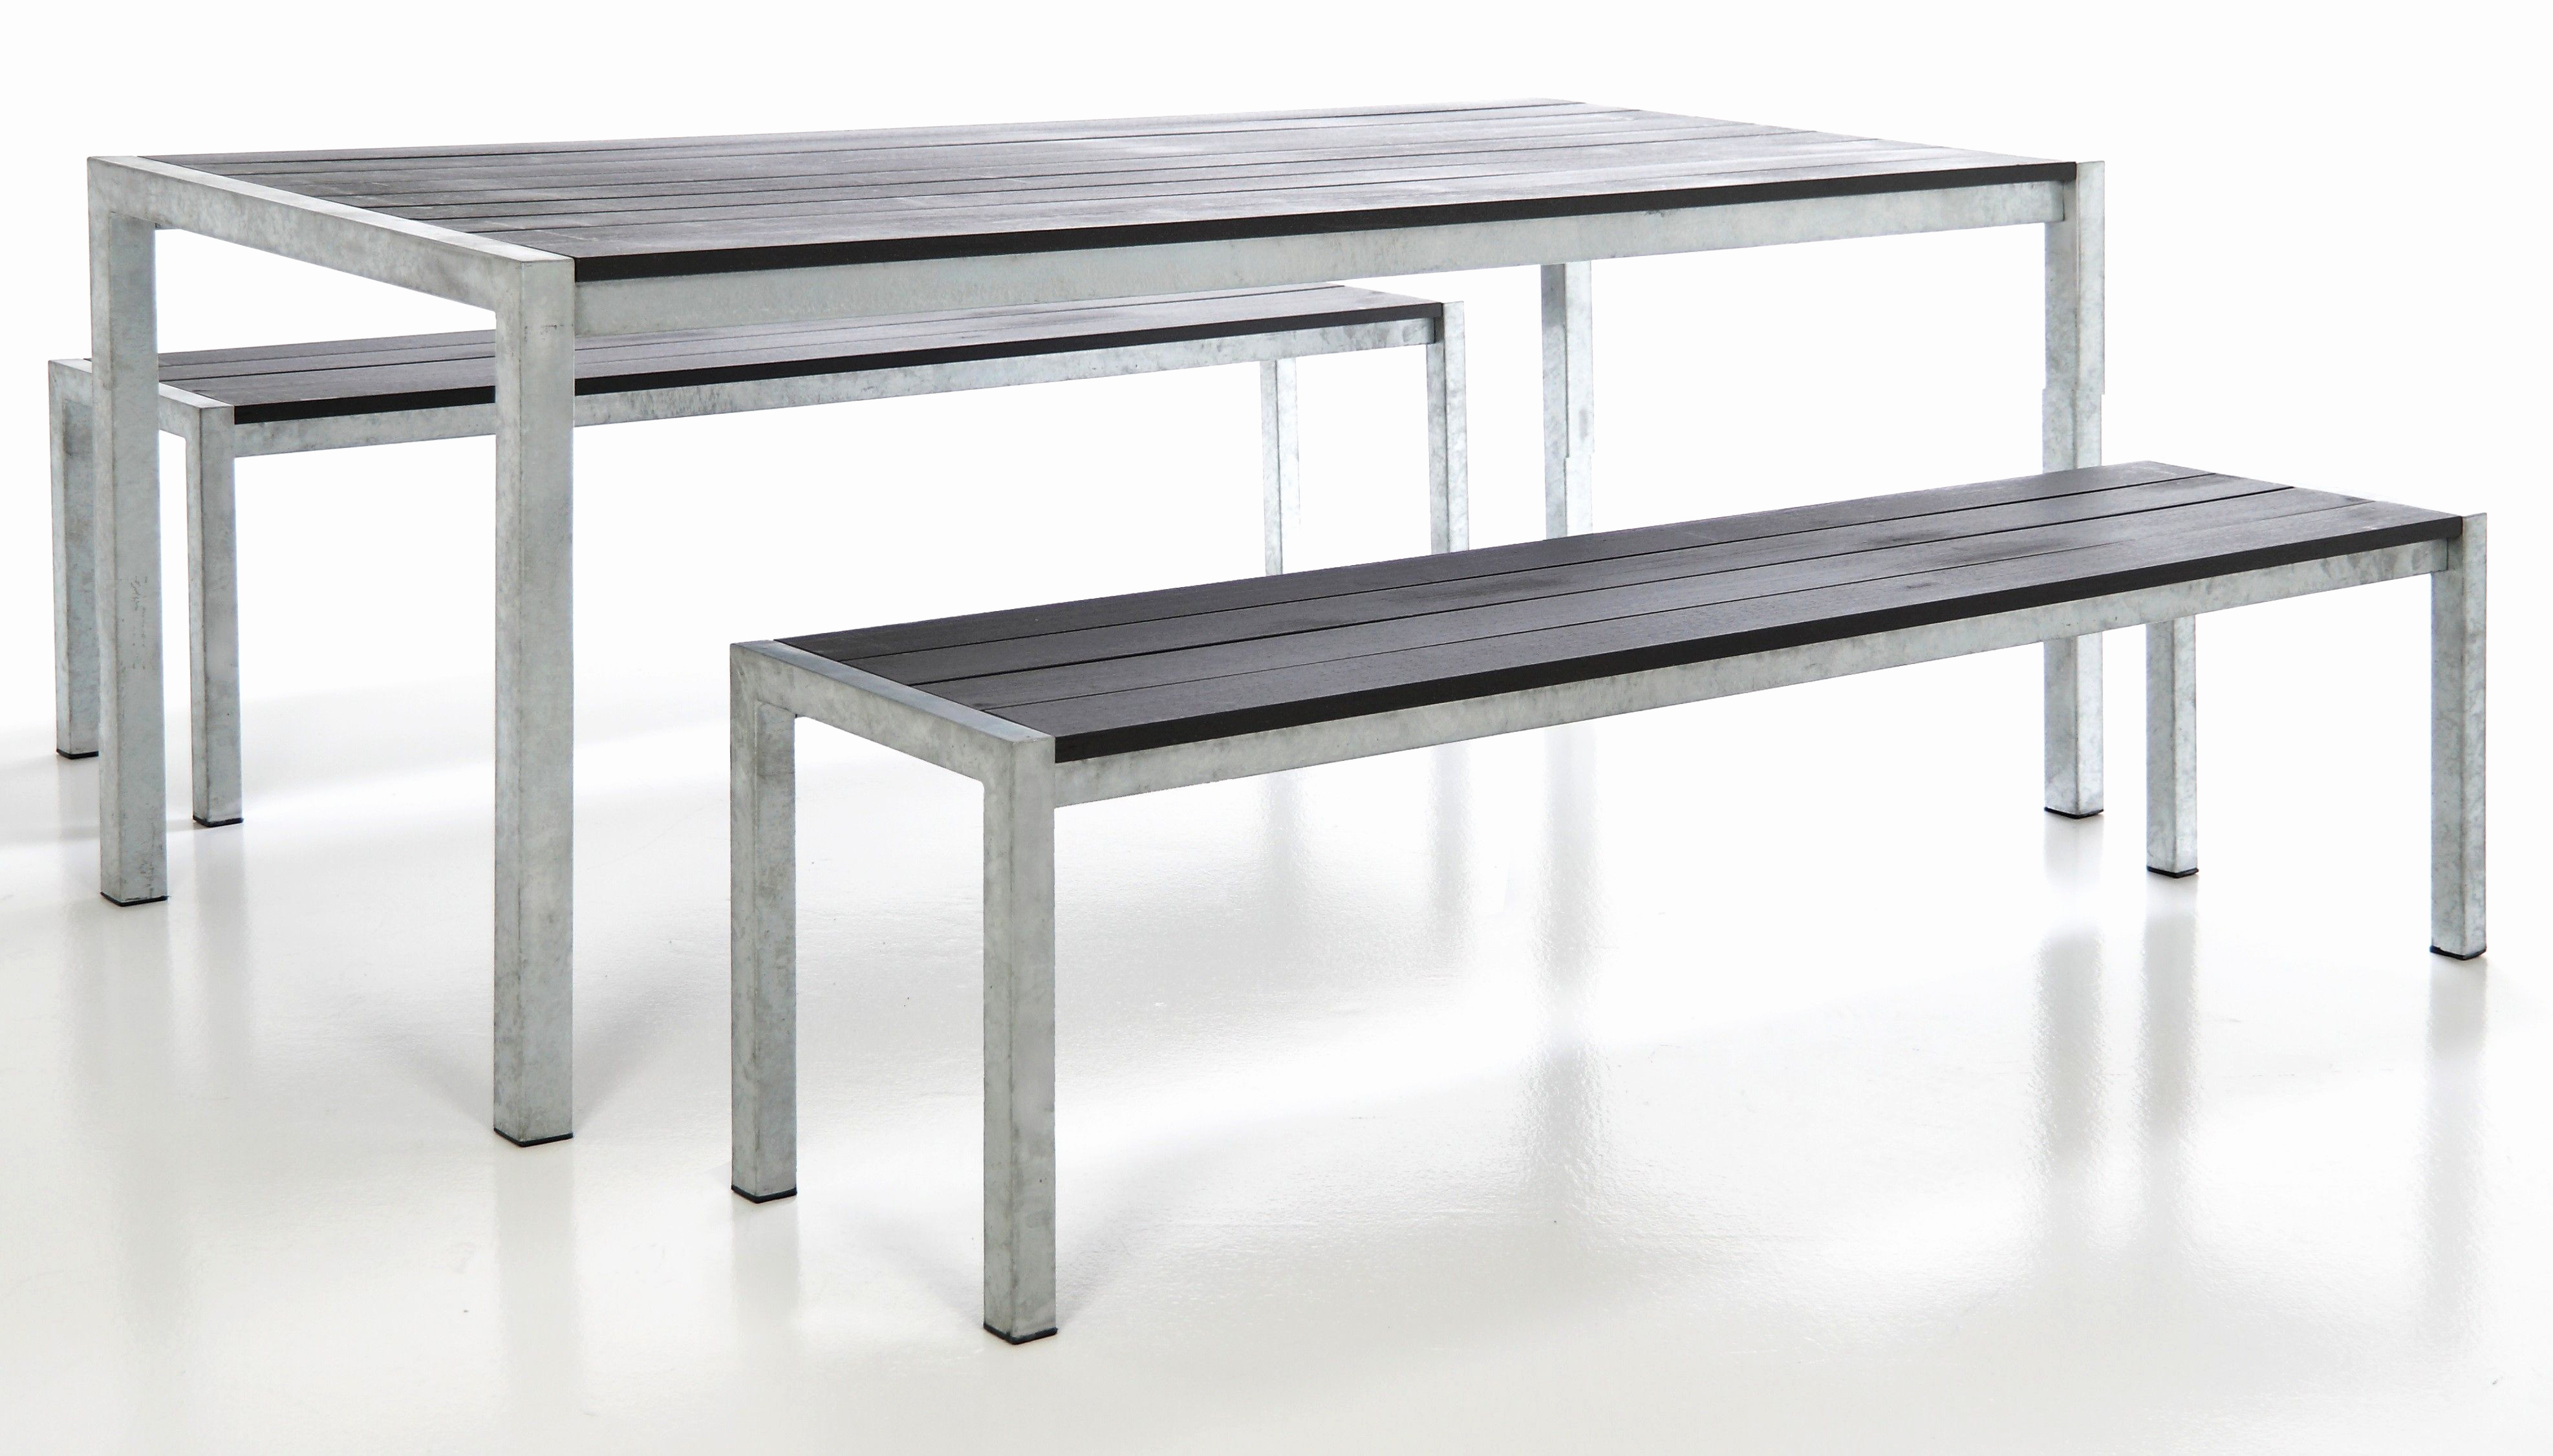 Salon De Jardin Plastique Leclerc Inspirant Collection Table De Jardin Plastique Leclerc Plus Luxueux Catalogue Leclerc